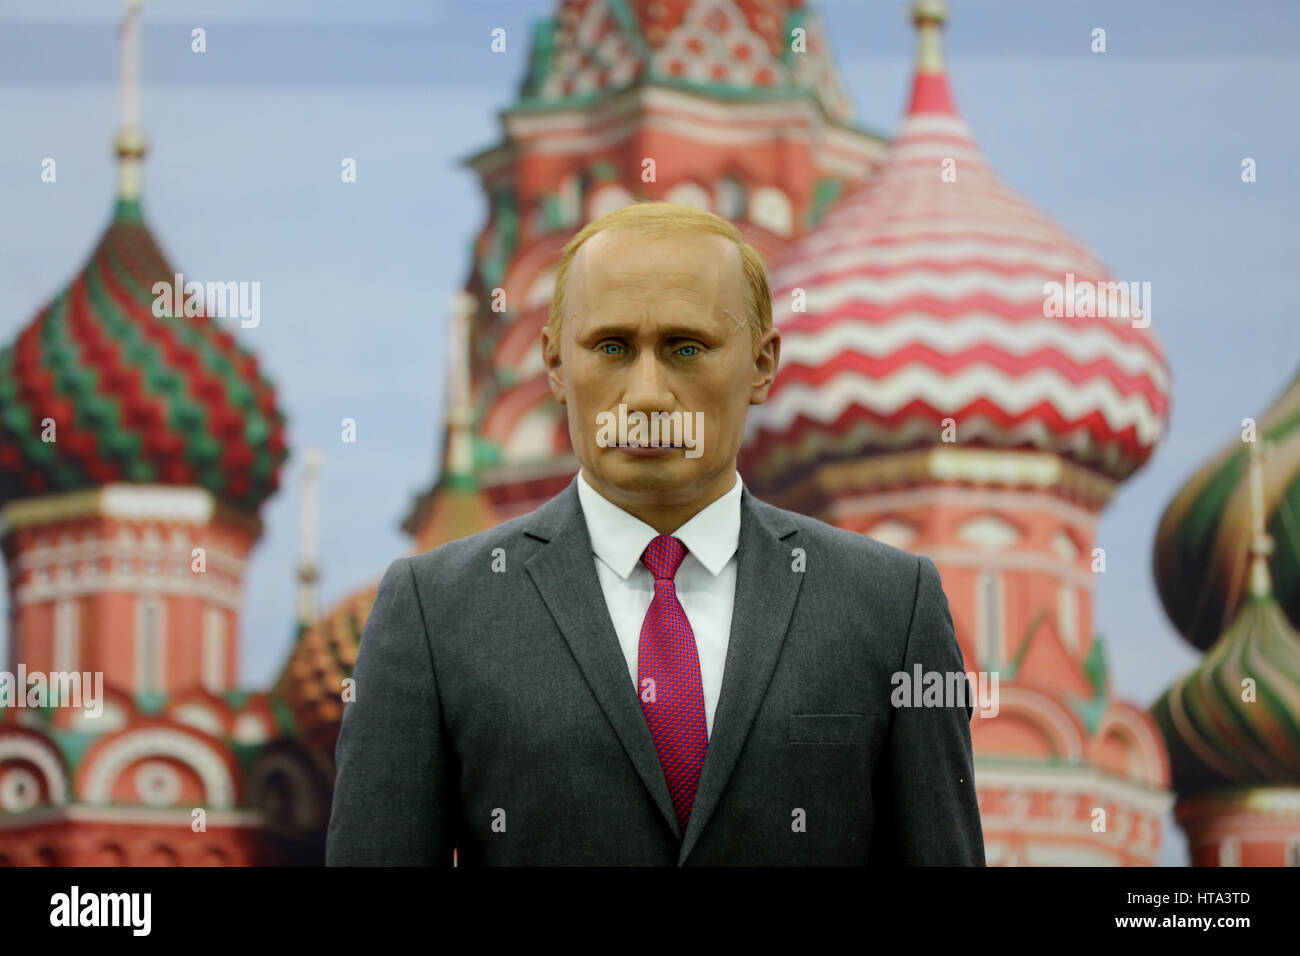 Shenyan, China. 9th Mar, 2017. A wax figure of Vladimir Putin at an expo in Shenyang, northeast China. Wax figures - Stock Image